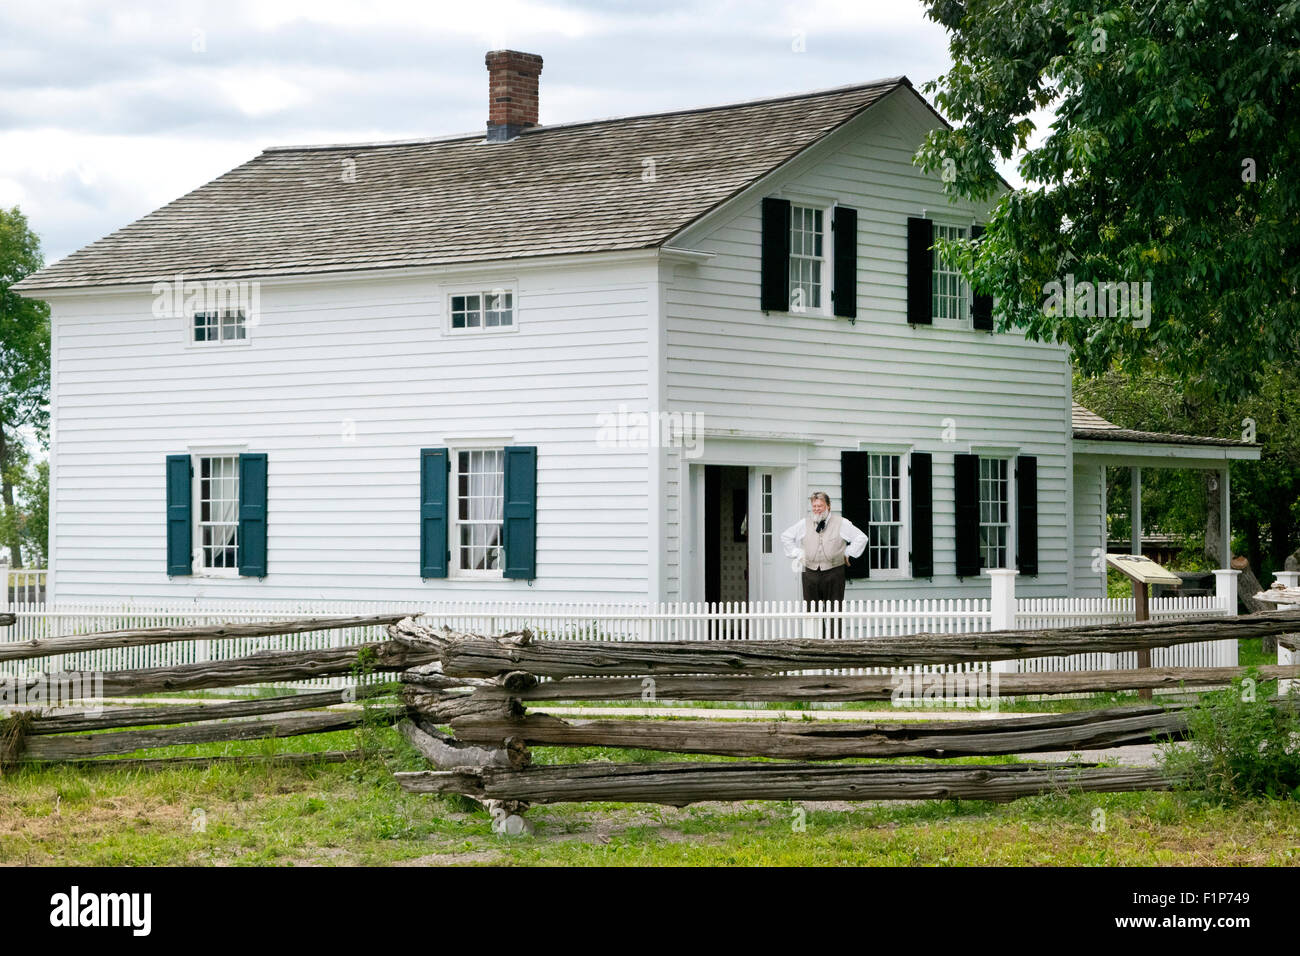 The Lutheran Pastor's home at Upper Canada Village. - Stock Image